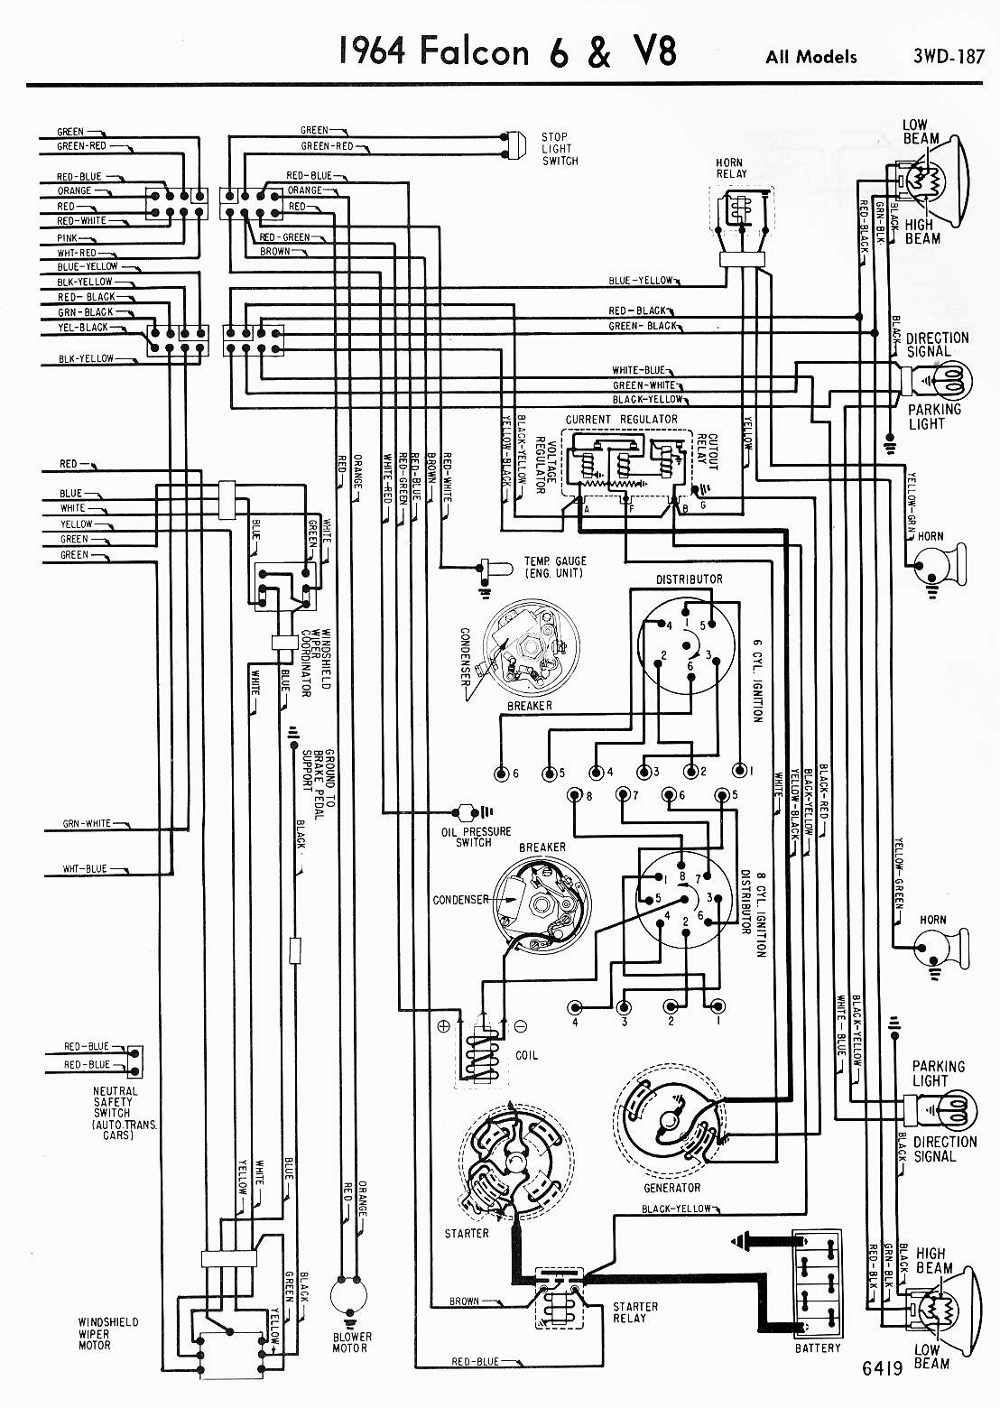 1964 ford falcon wiring diagram wiring diagrams of 1964 ford 6 Falcon Wiring Diagrams 1964 ford falcon wiring diagram wiring diagrams of 1964 ford 6 and v8 falcon all 1963 falcon auto wiring diagrams